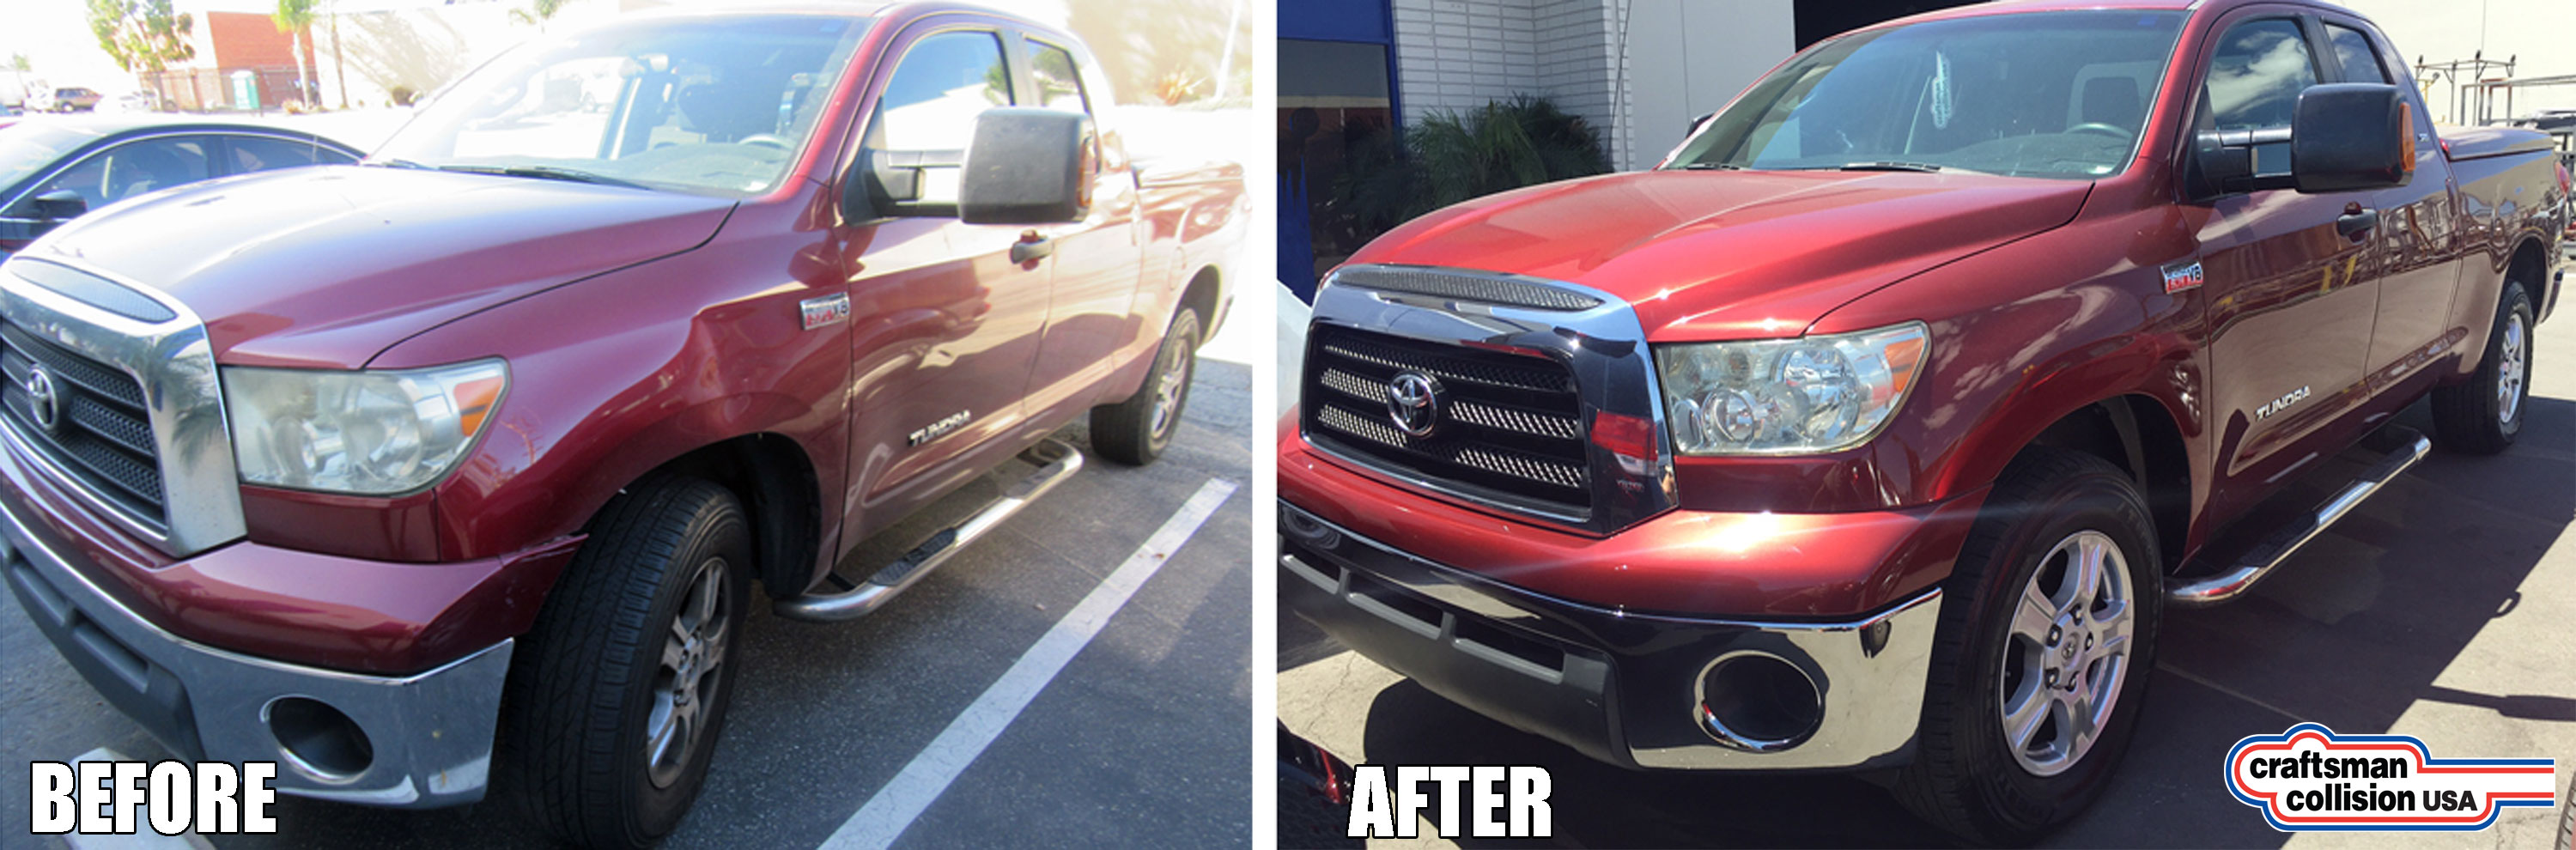 Toyota Tundra fender repair